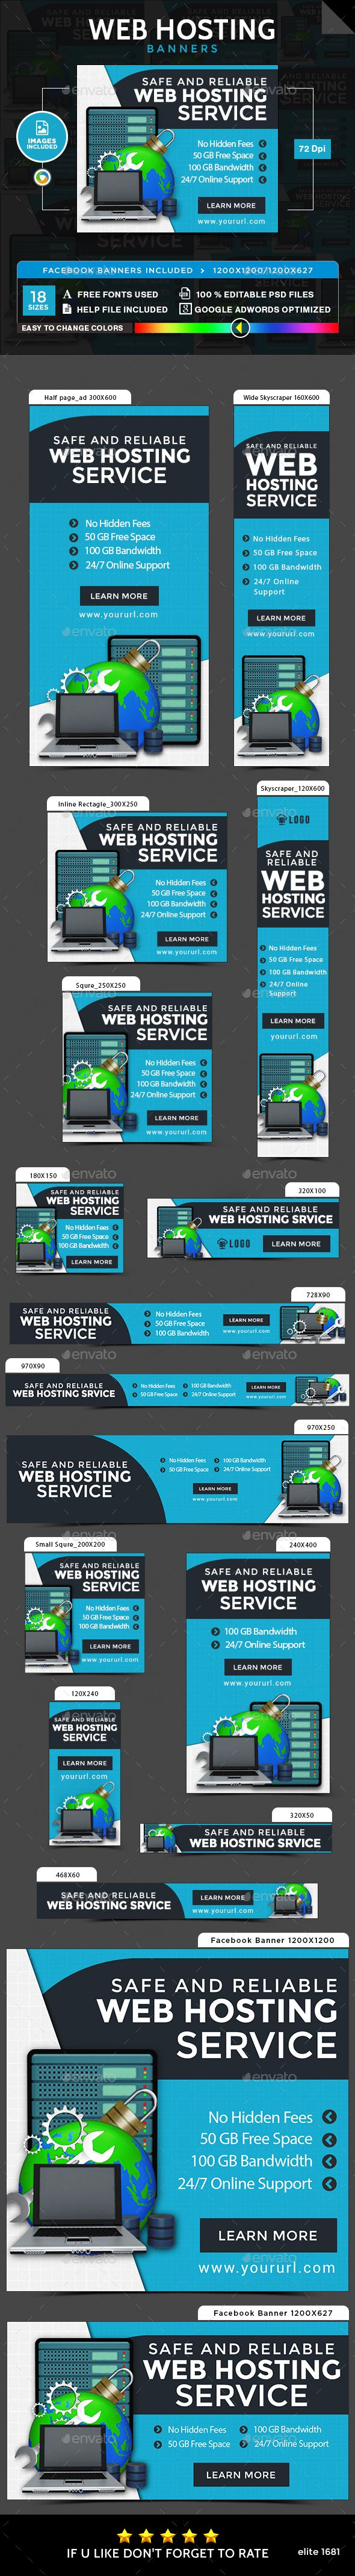 Free web hosting no banner - Web Hosting Banners Images Included